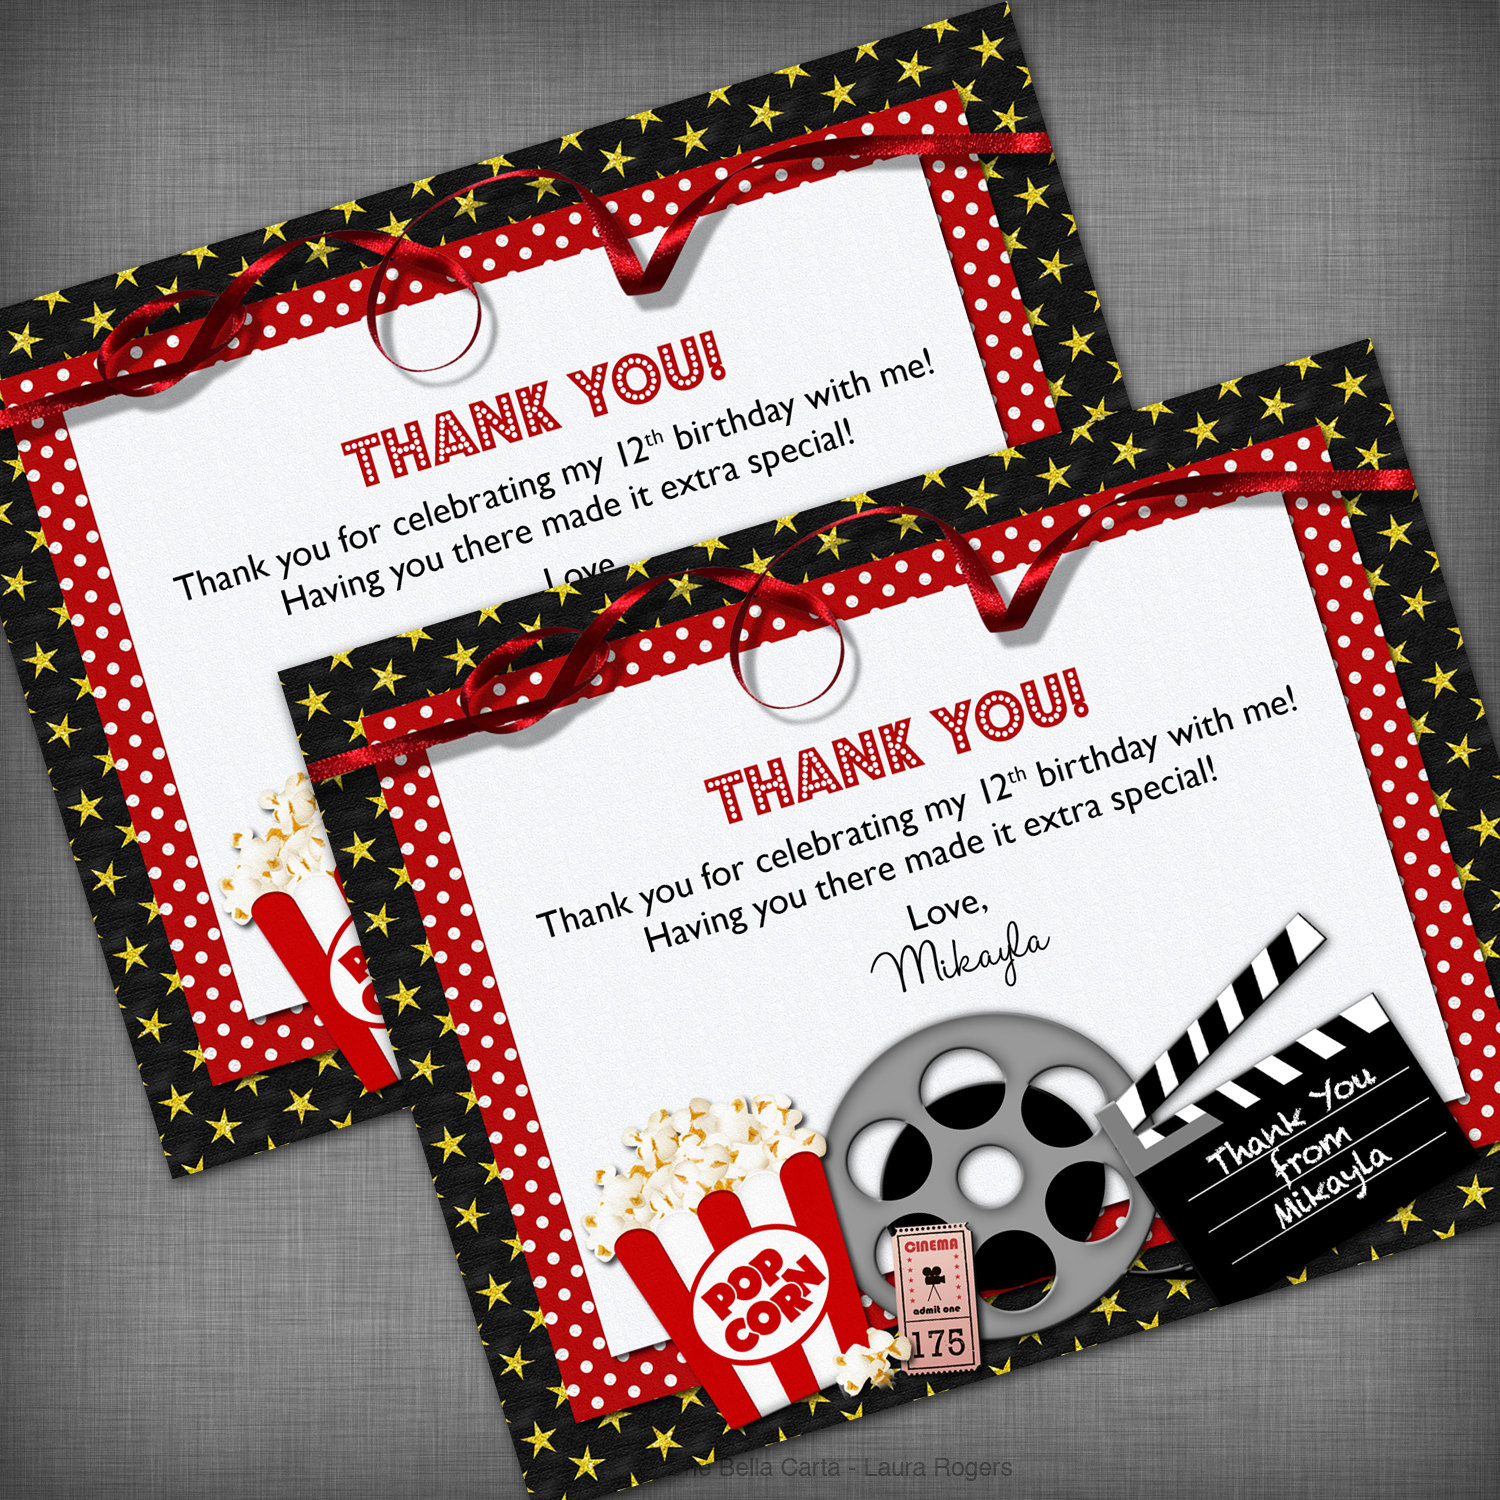 Pirate Party Invitation Wording is great invitations template